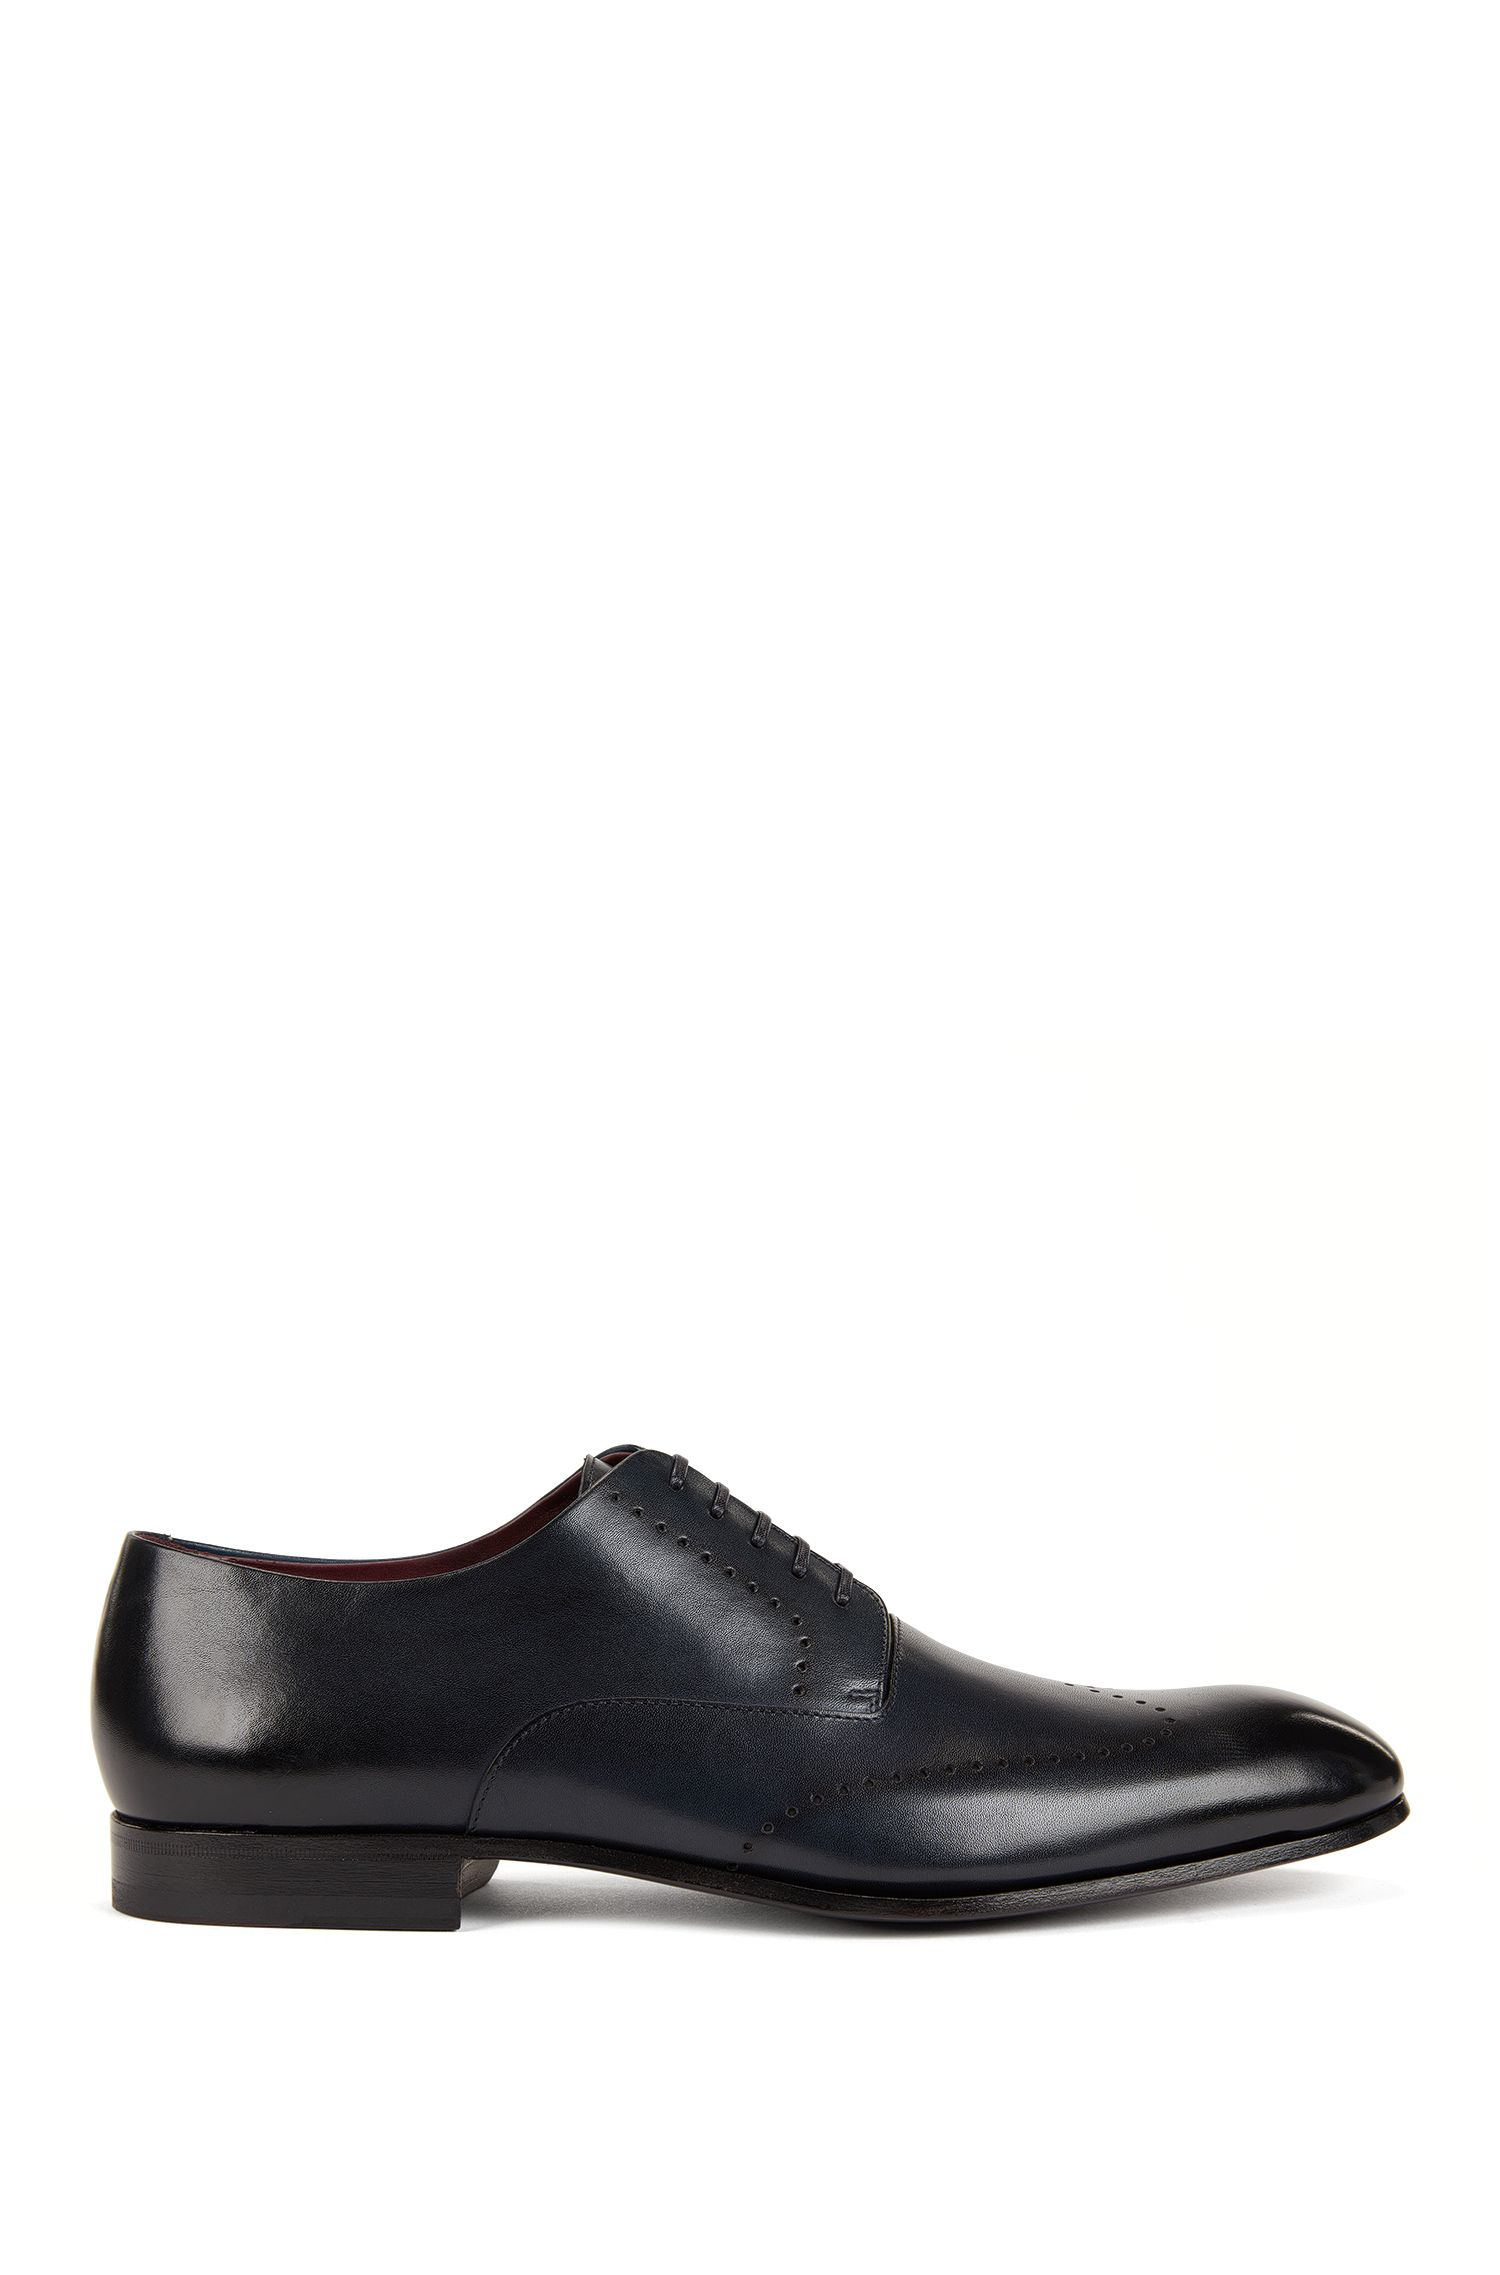 Burnished-leather Derby shoes with brogueing